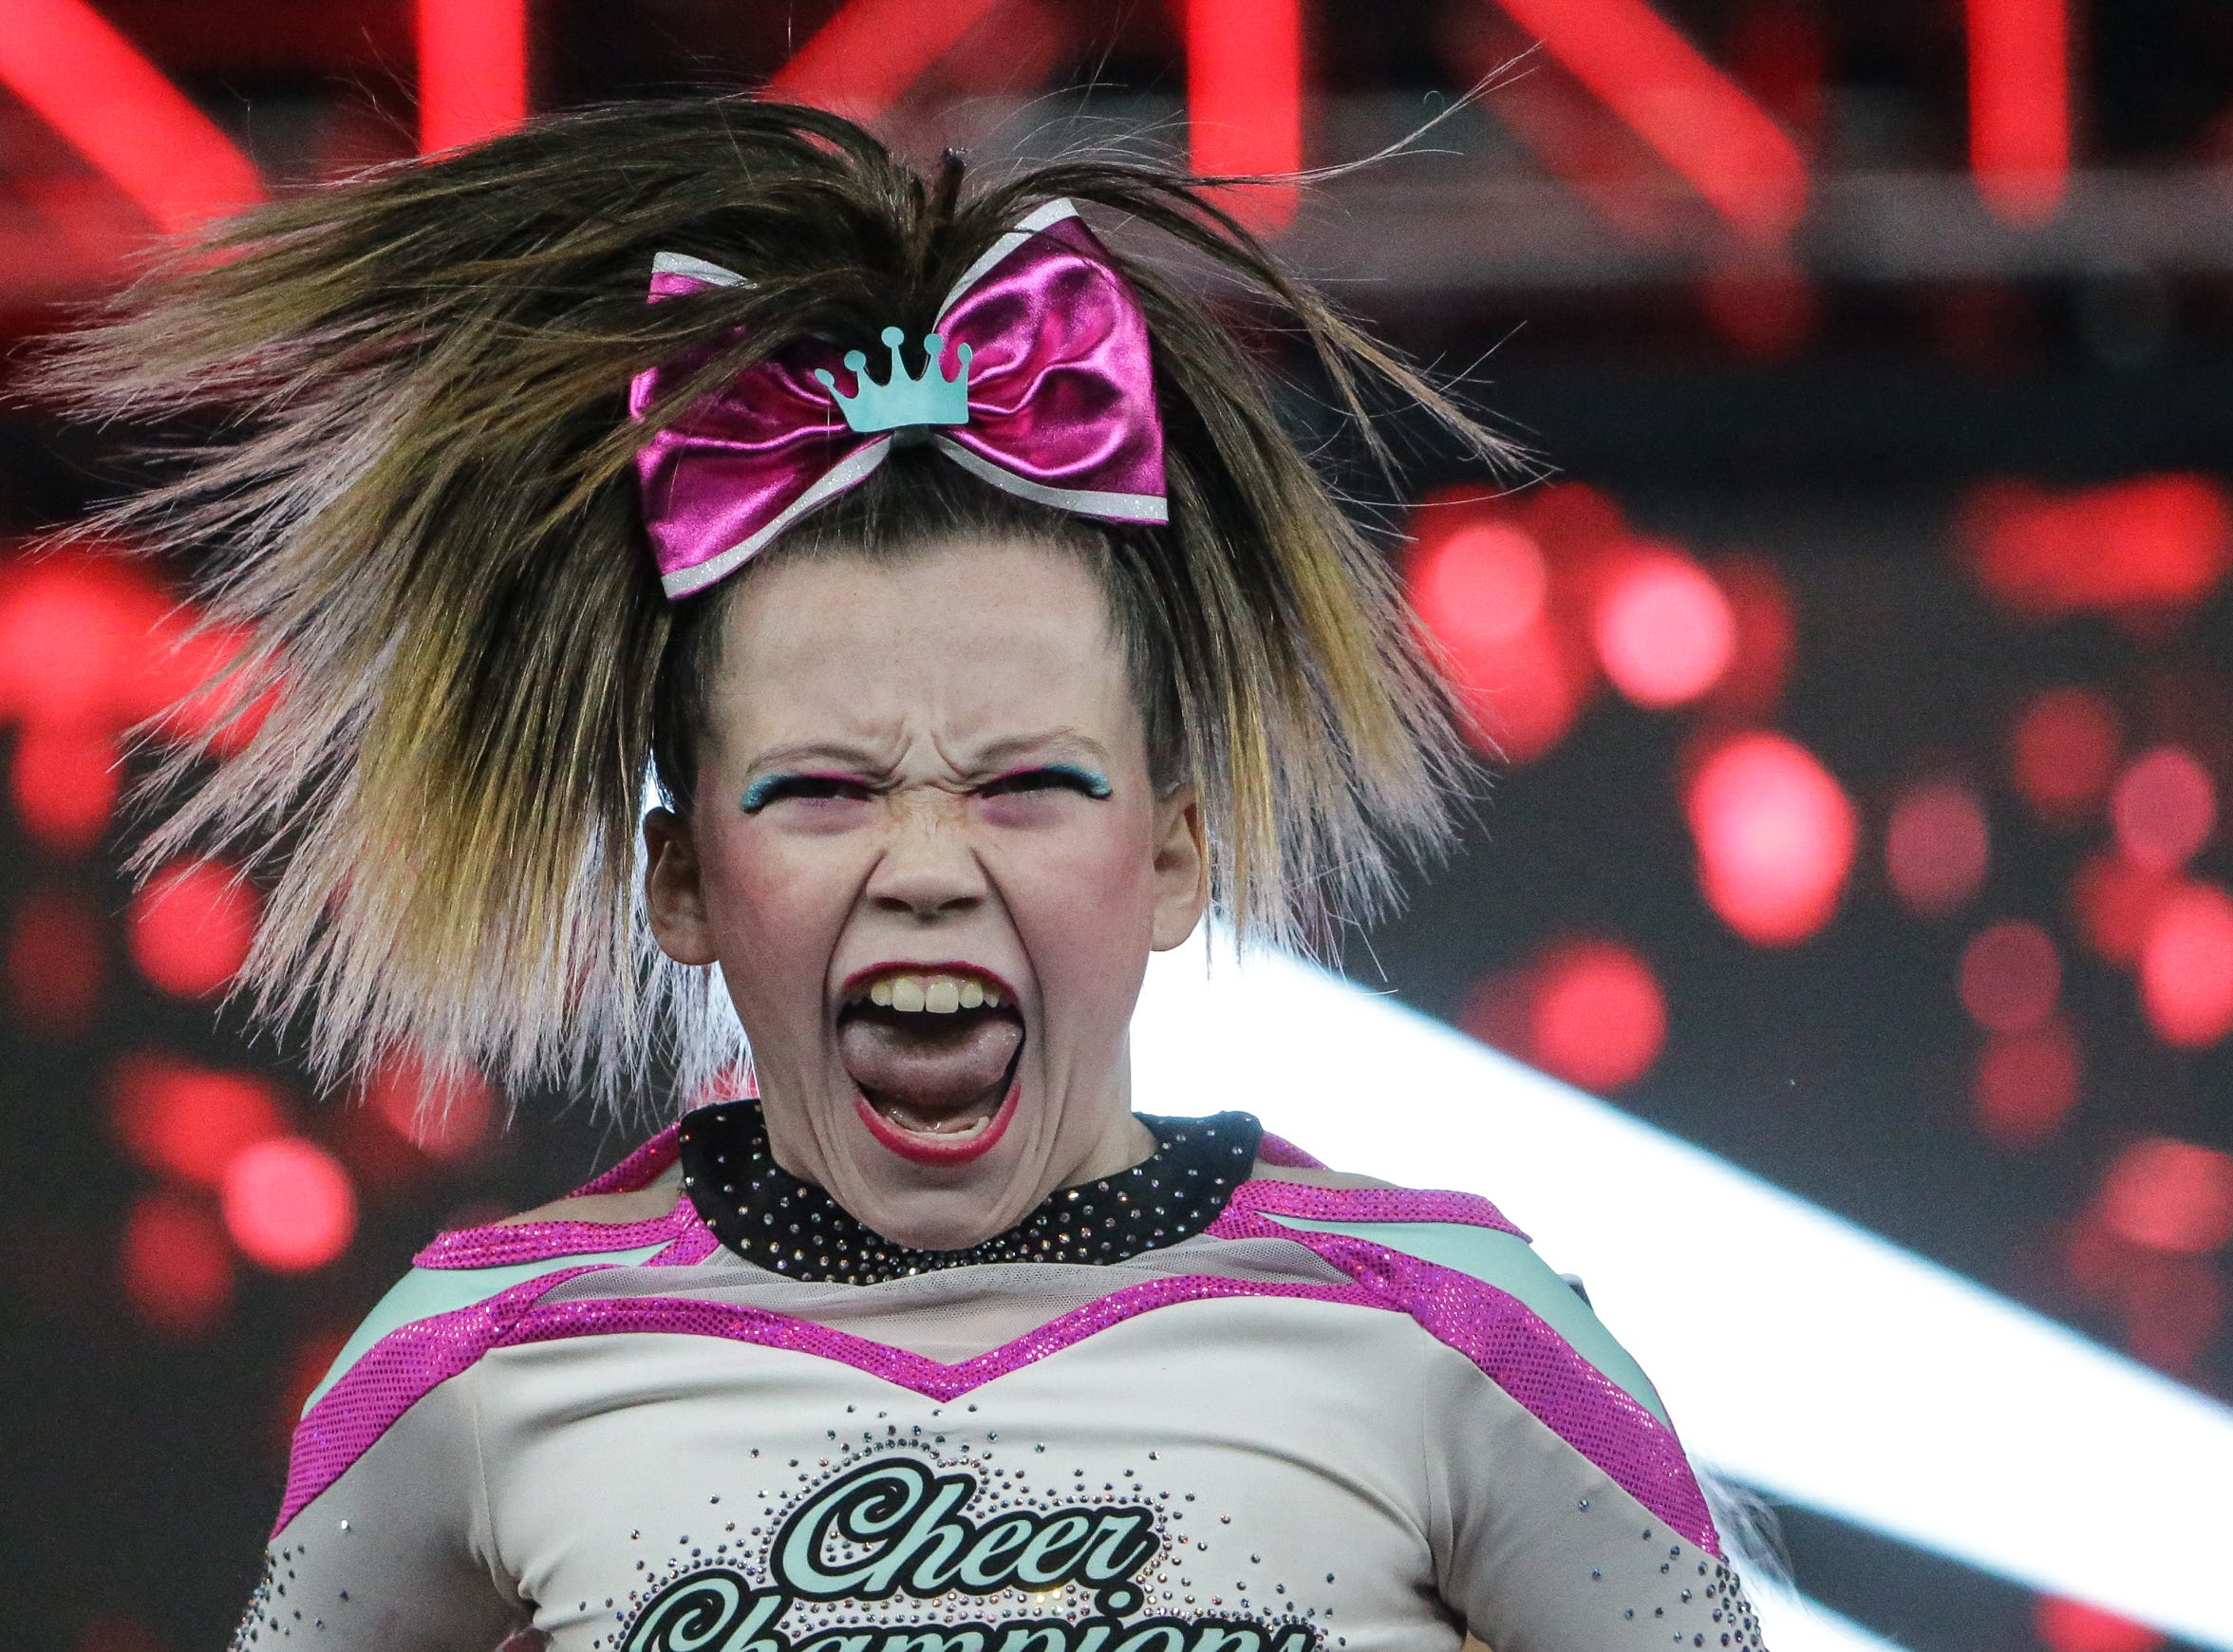 A member of Tiffany's Cheer and Dance Studio Lady Diamonds gives her best spirit face during the JAMfest Cheer Super Nationals held at the Indiana Convention Center on Sunday, Jan. 28, 2018.